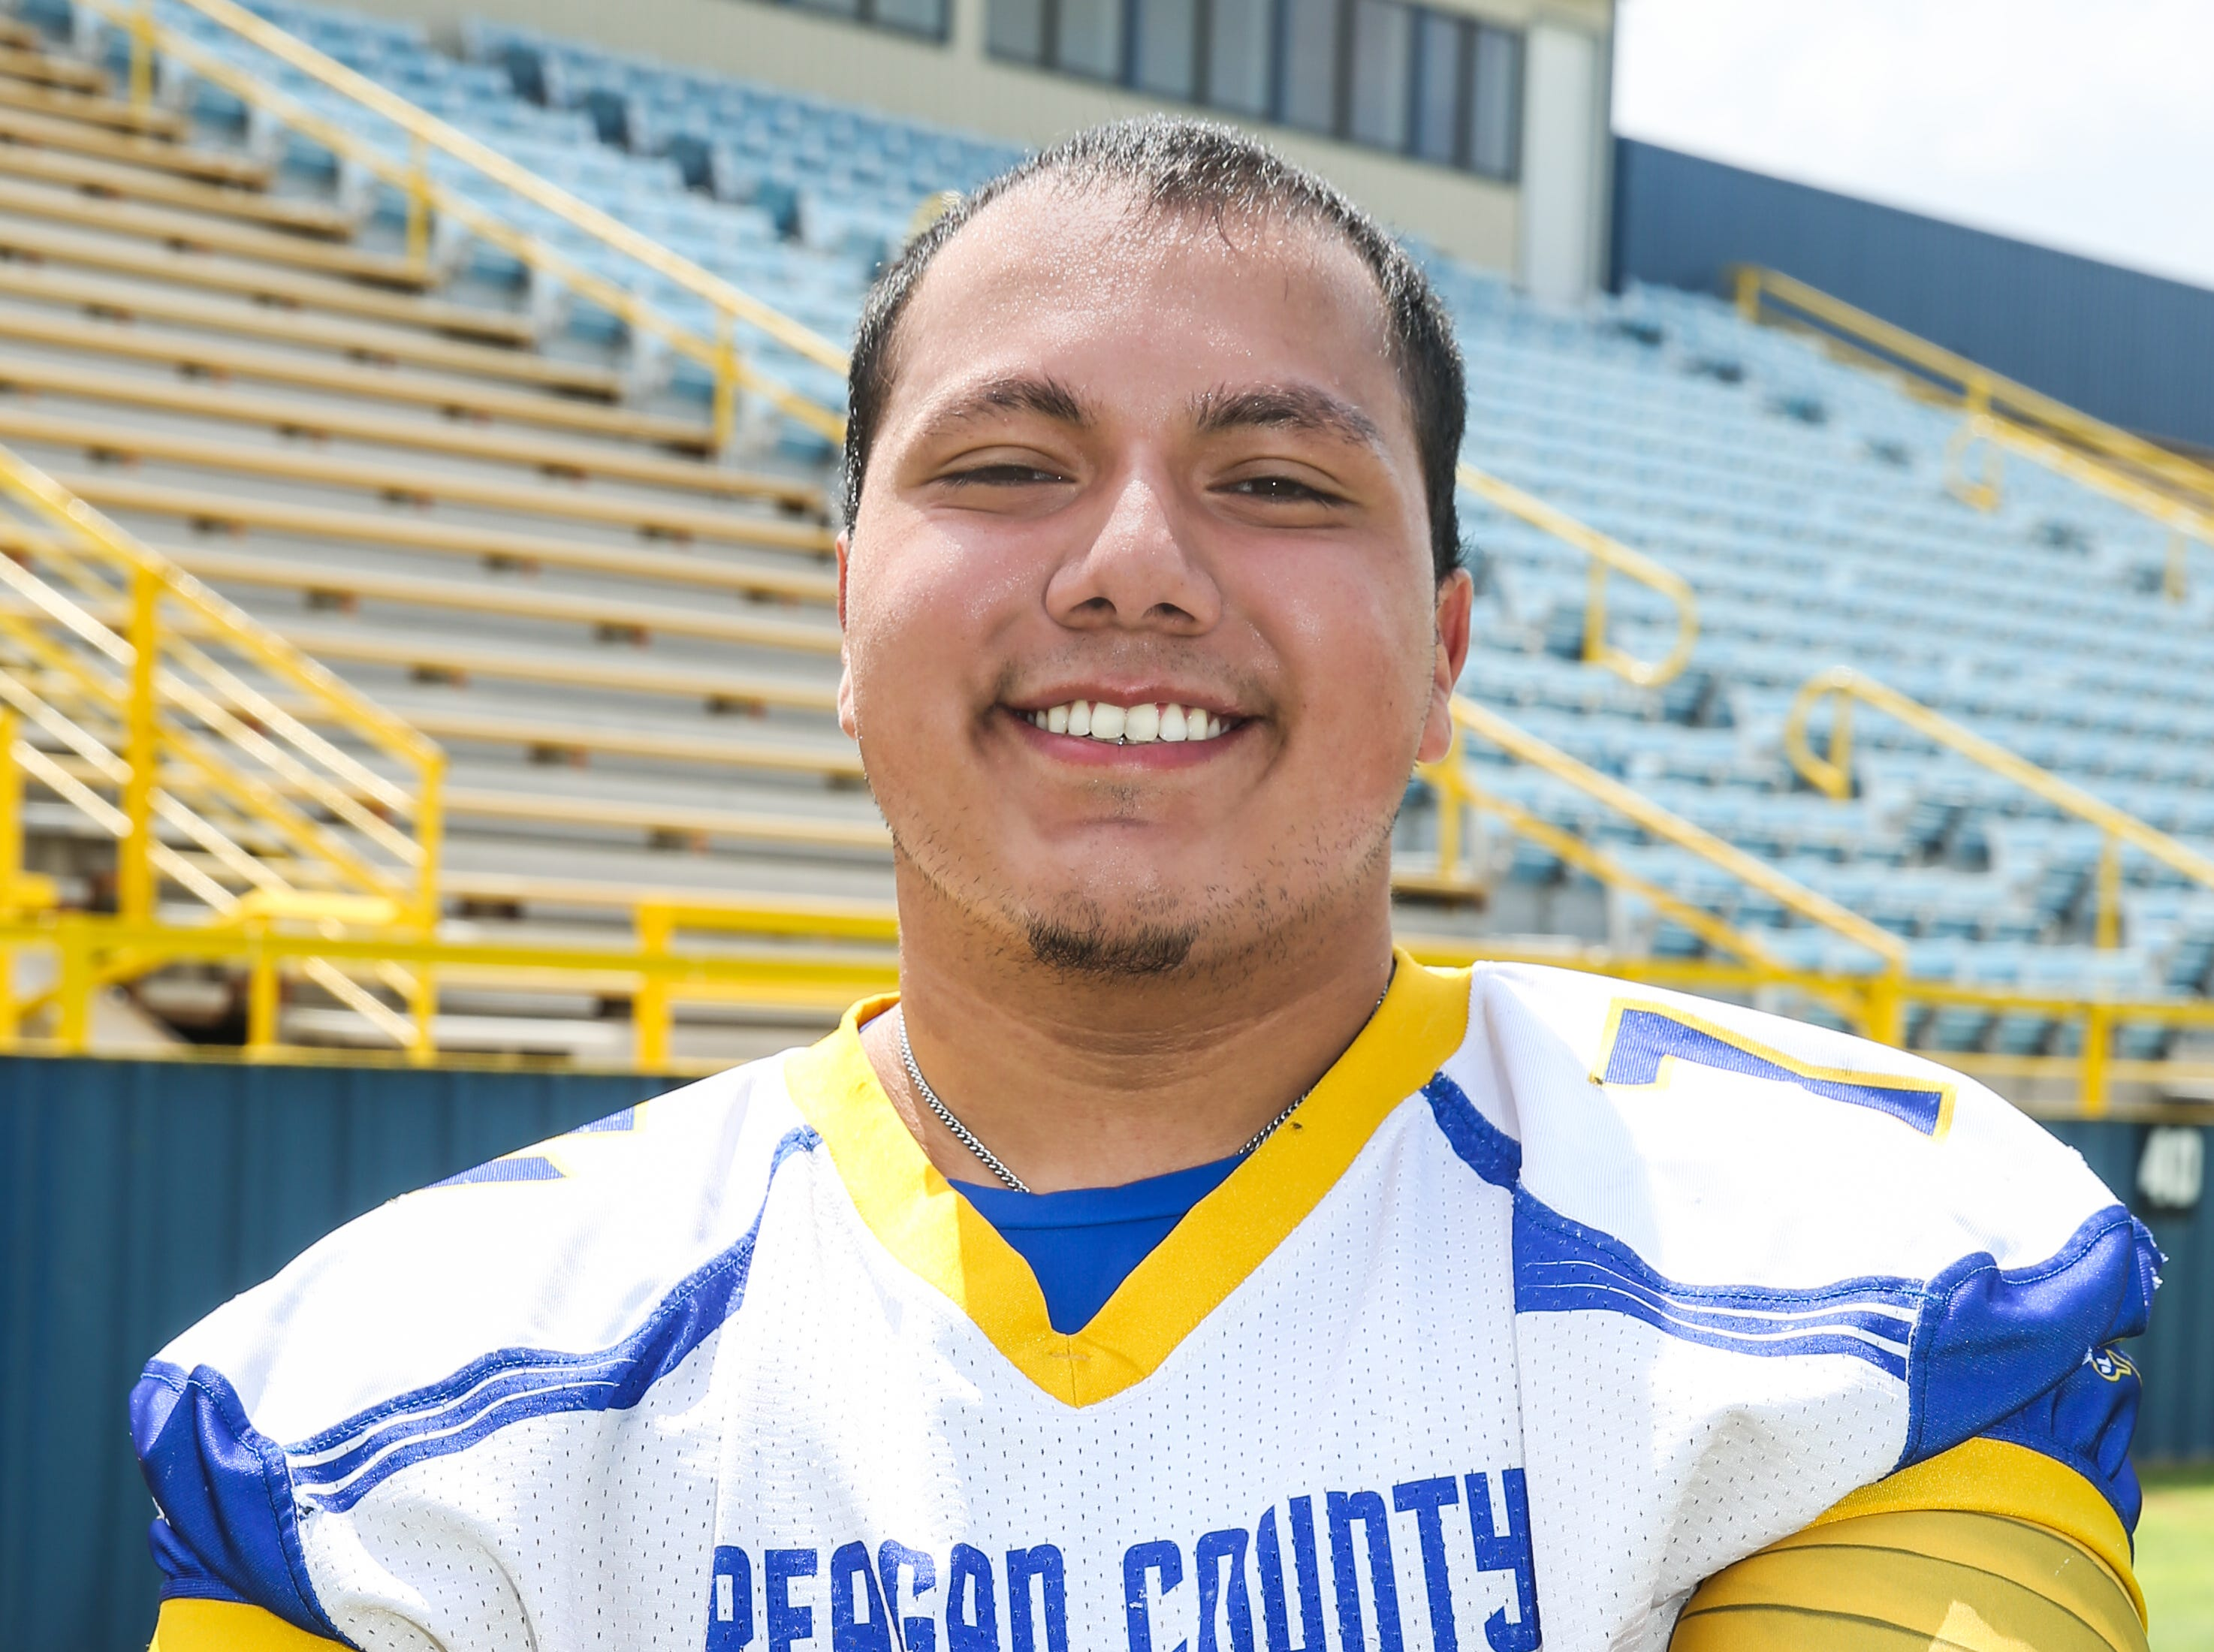 Tristan Ortiz, Reagan County, Offensive lineman, 5-11, 270, Sr.  Scouting report: Ortiz may be the strongest lineman in all of West Texas. He broke the state powerlifting record last spring with an 820-pound squat. He graded out at 94 percent and recorded 64 pancake blocks to earn honorable mention all-state honors.